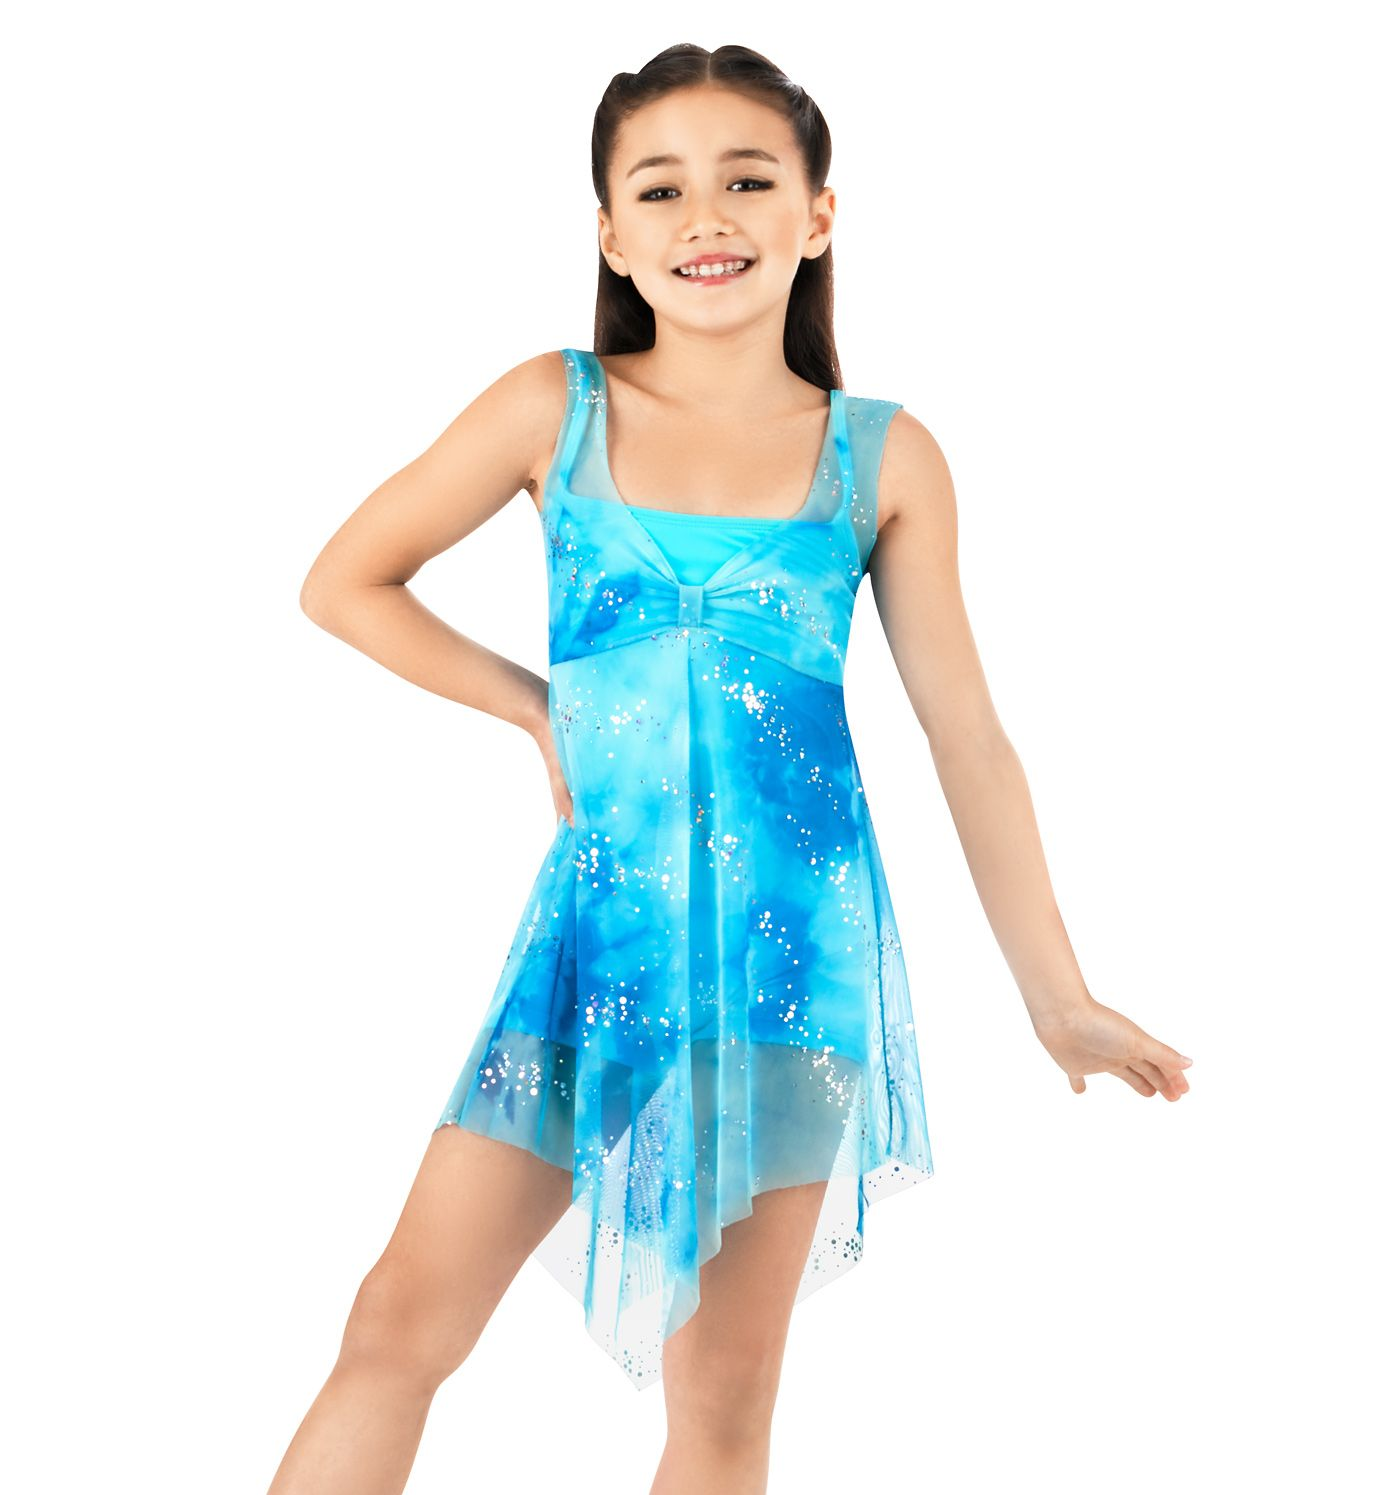 Child Overdress With Unitard - Style Number: N8450Cx